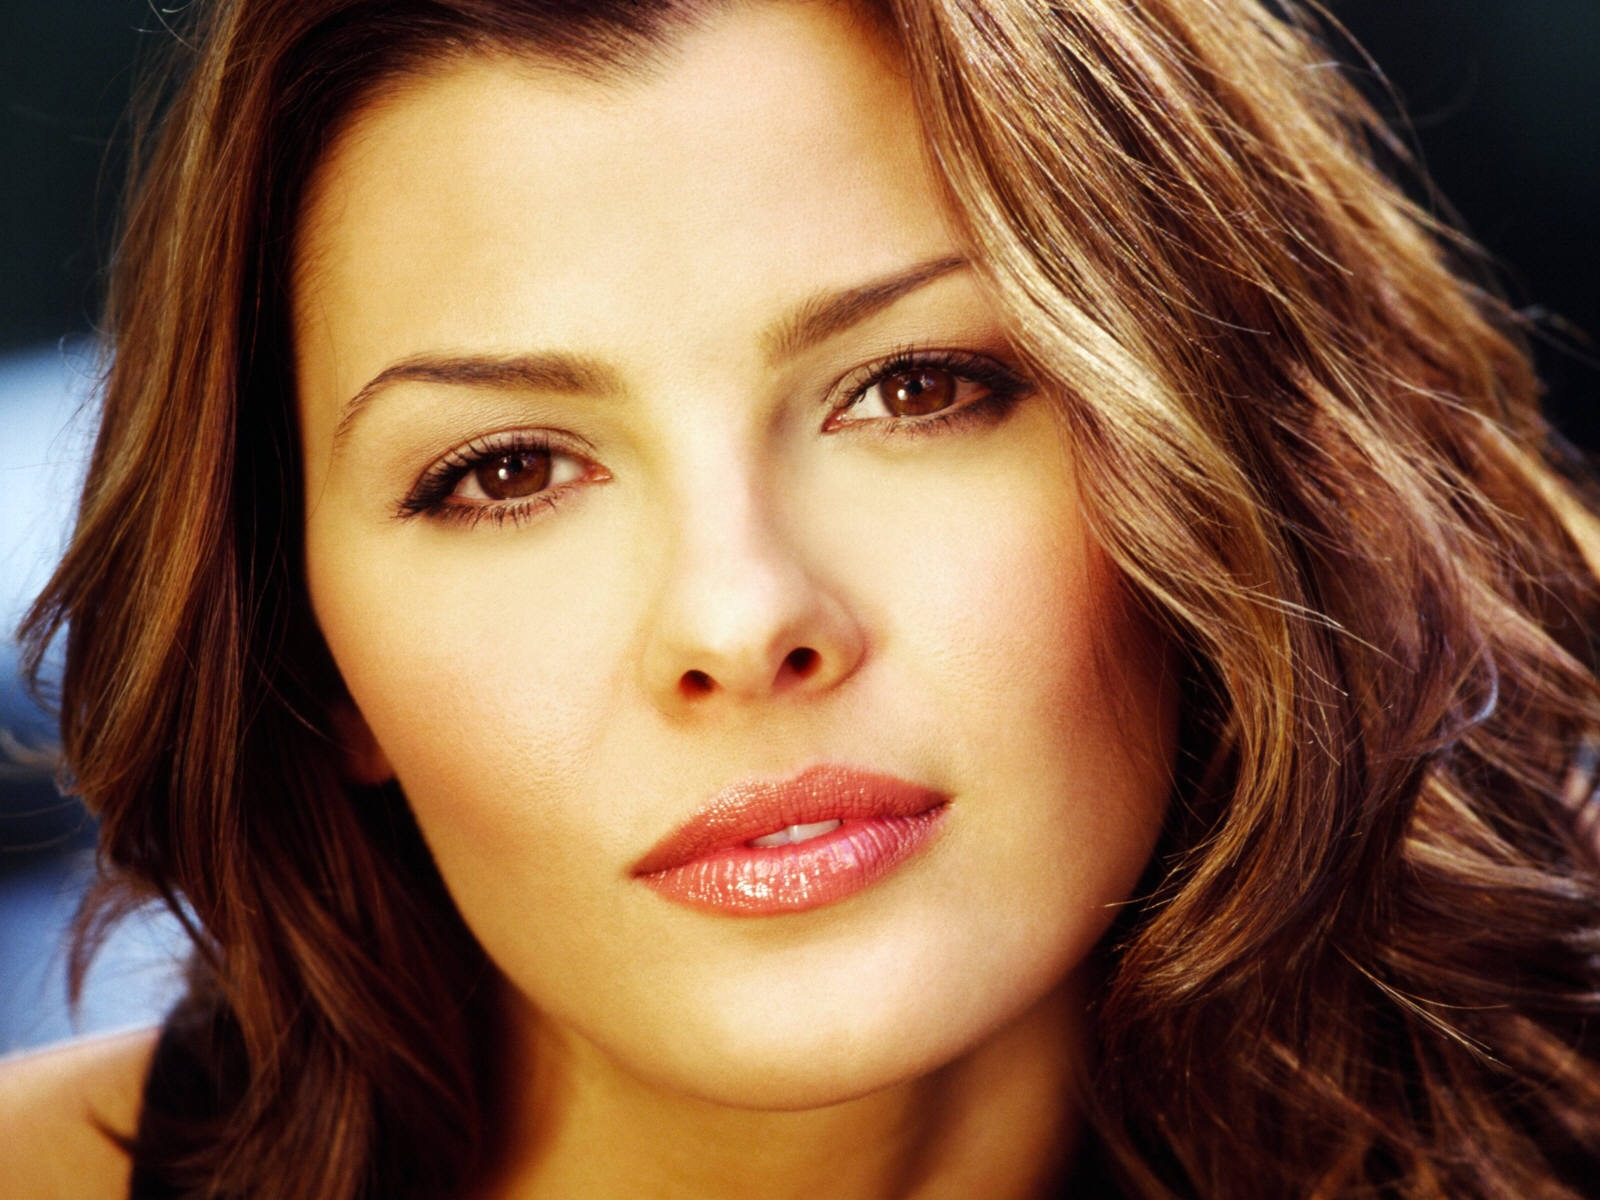 Related pictures famous landry allbright - Ali Landry 1600 X 1200 Normal